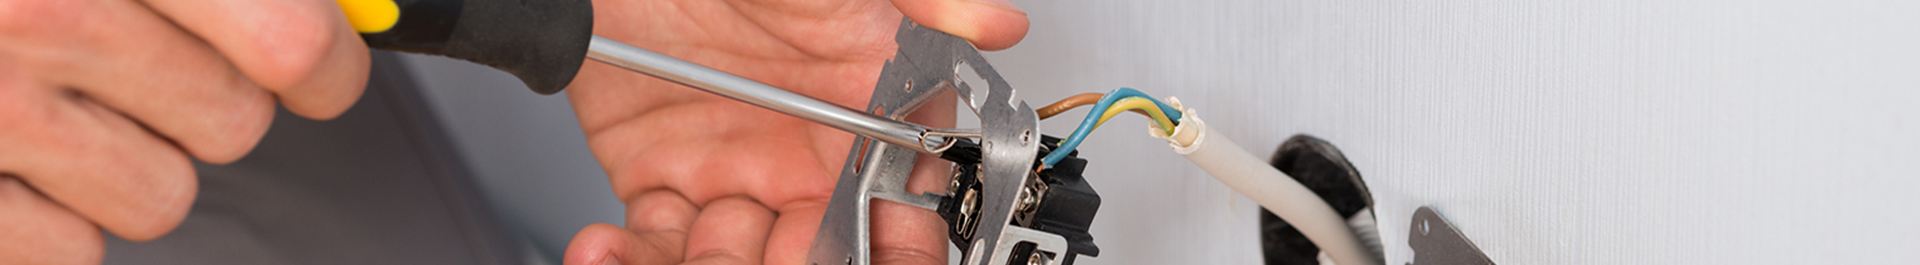 Surprising 10 Home Wiring Problems Electrical Wiring Problems Wiring 101 Ivorowellnesstrialsorg